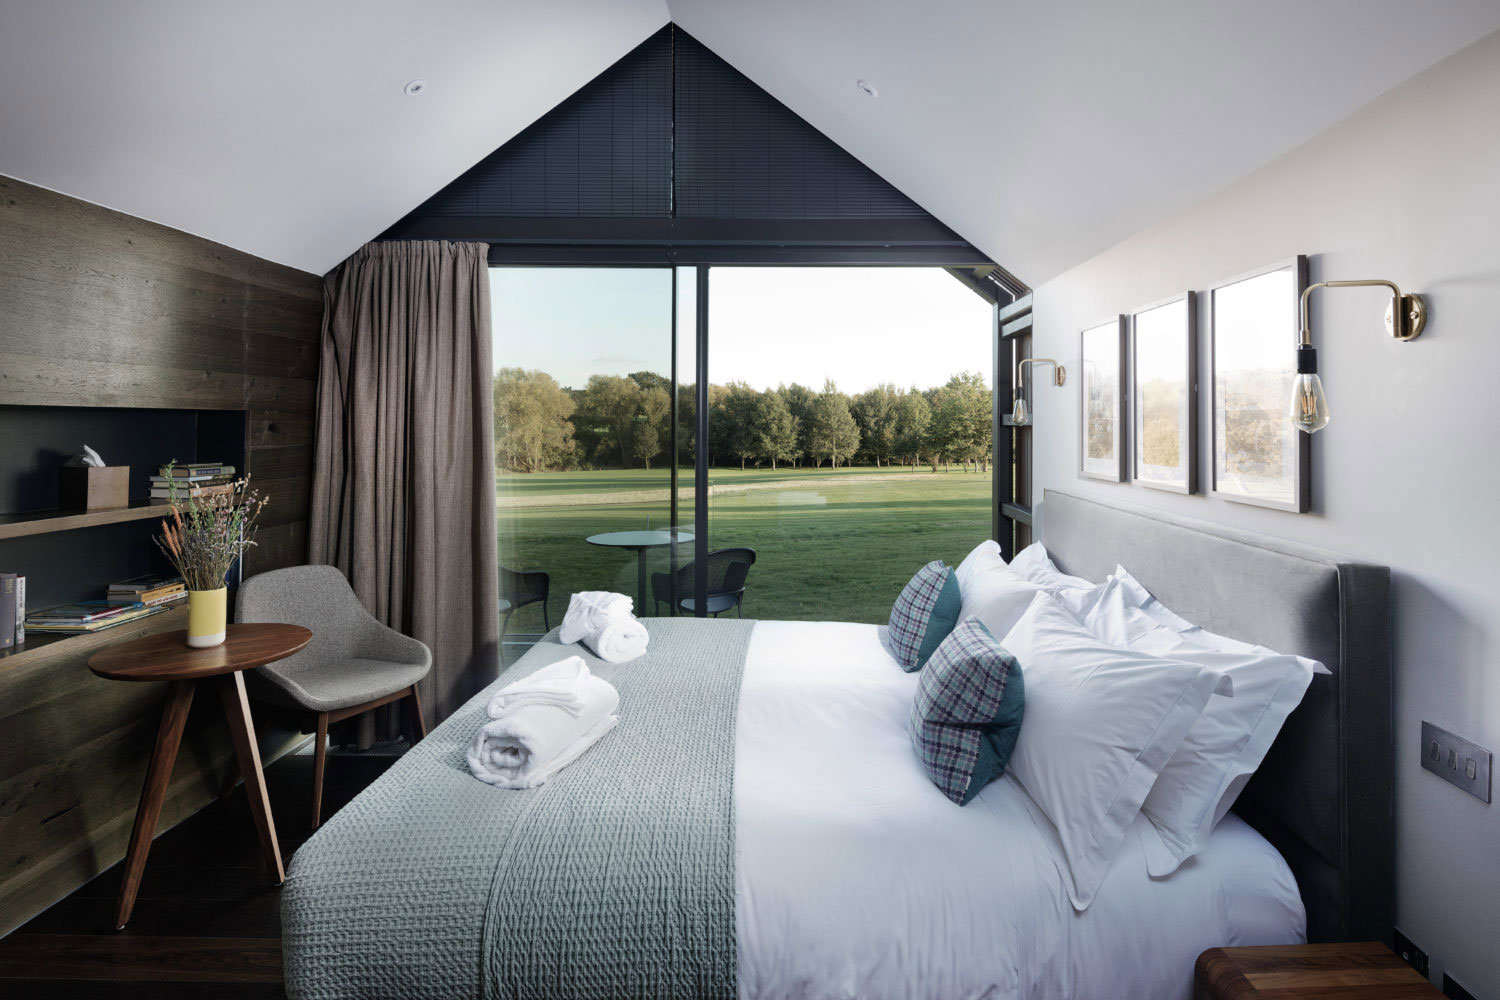 lodge interior with bed